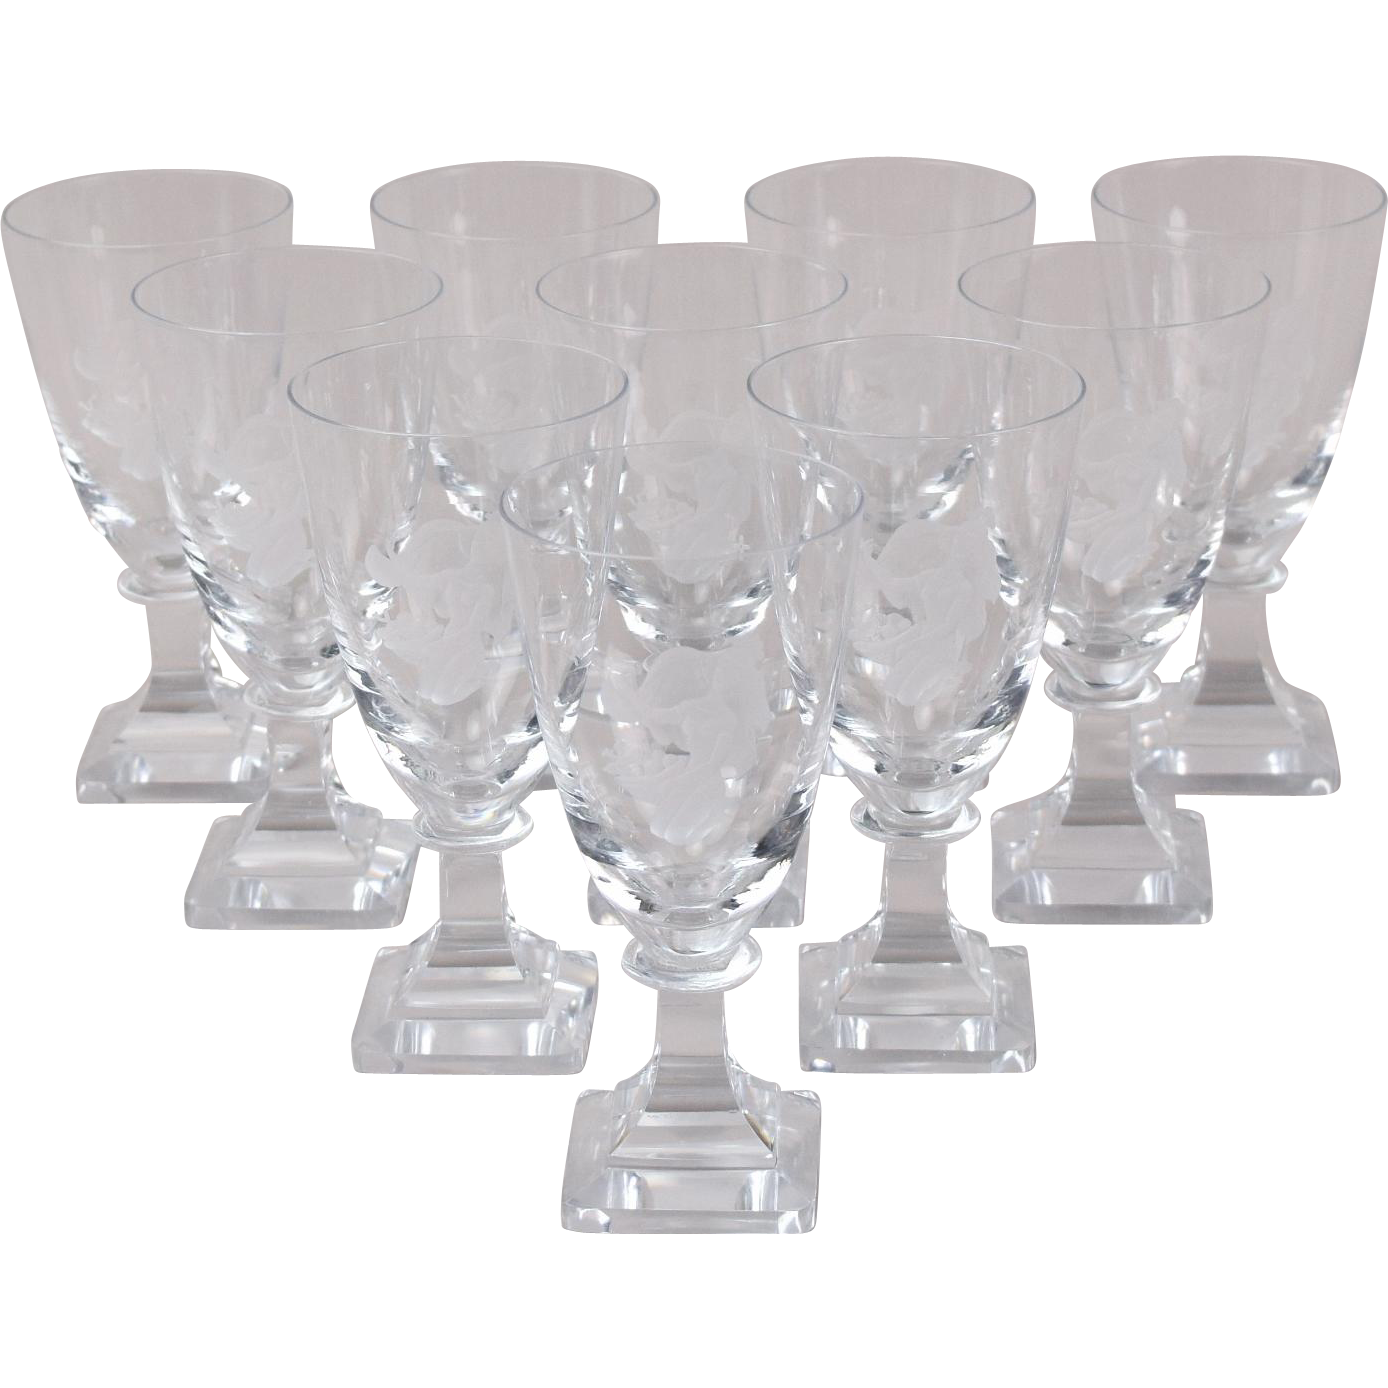 set 10 midcentury modern cut crystal wine glasses woman in diaphanous gown